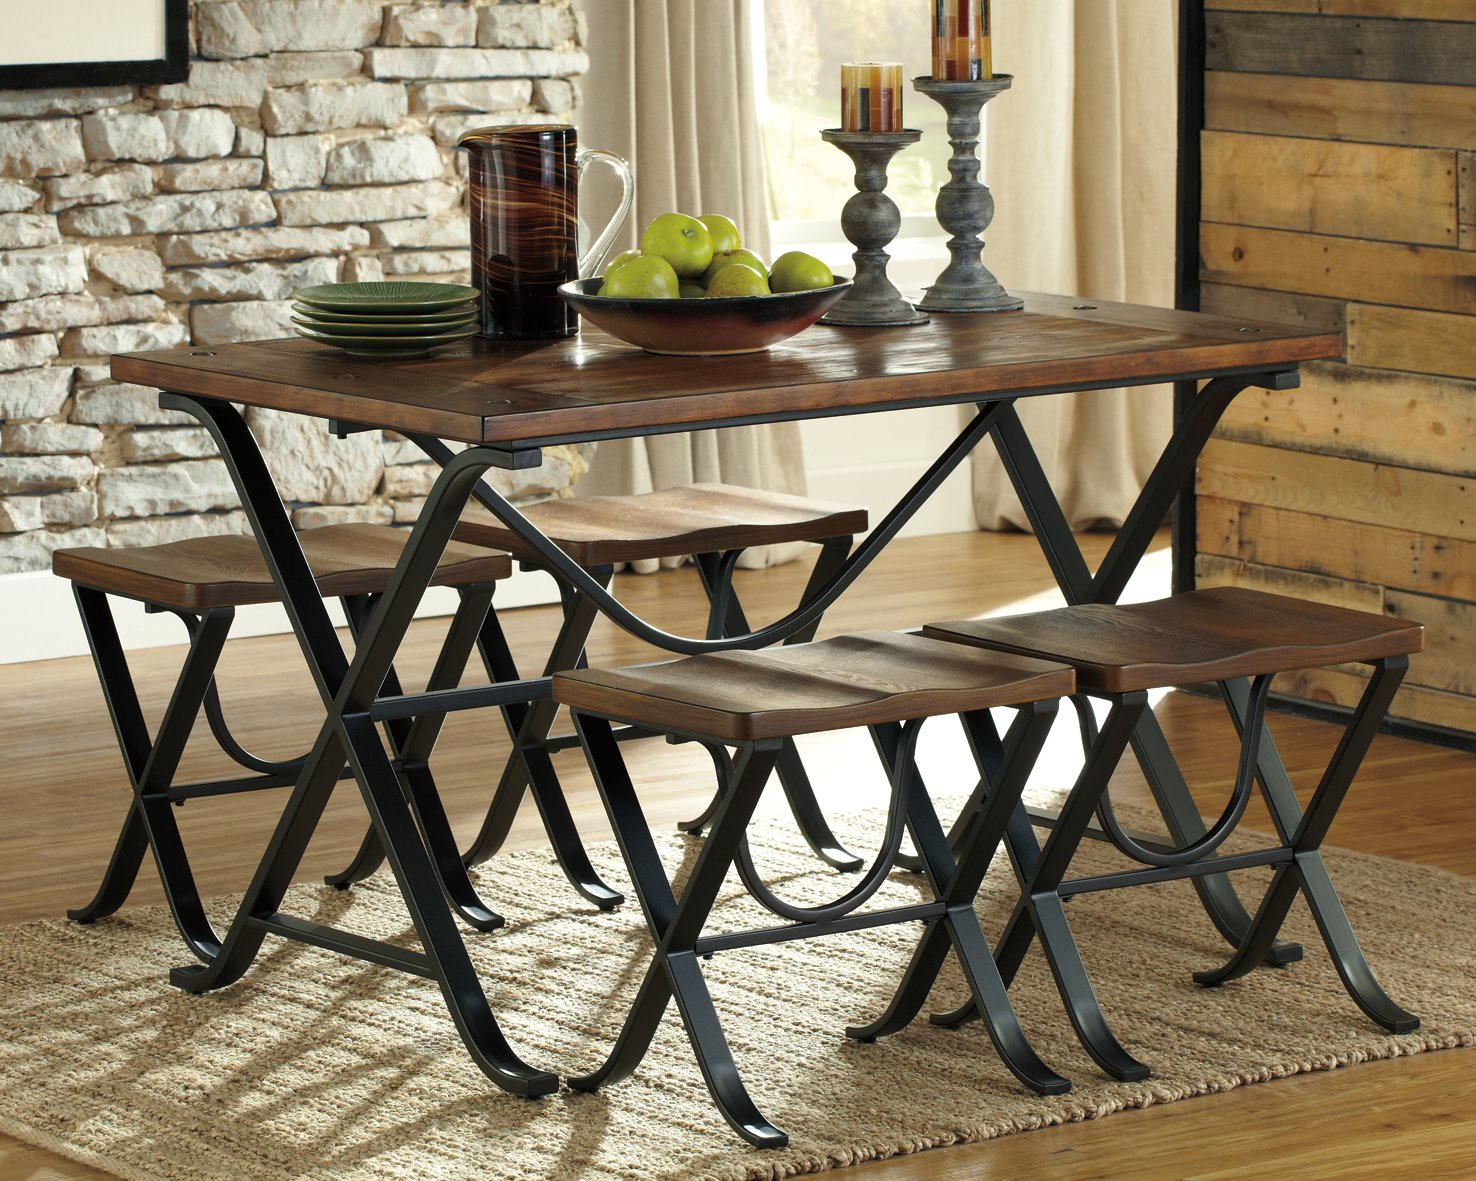 Freimore Signature Design by Ashley Dining Table image